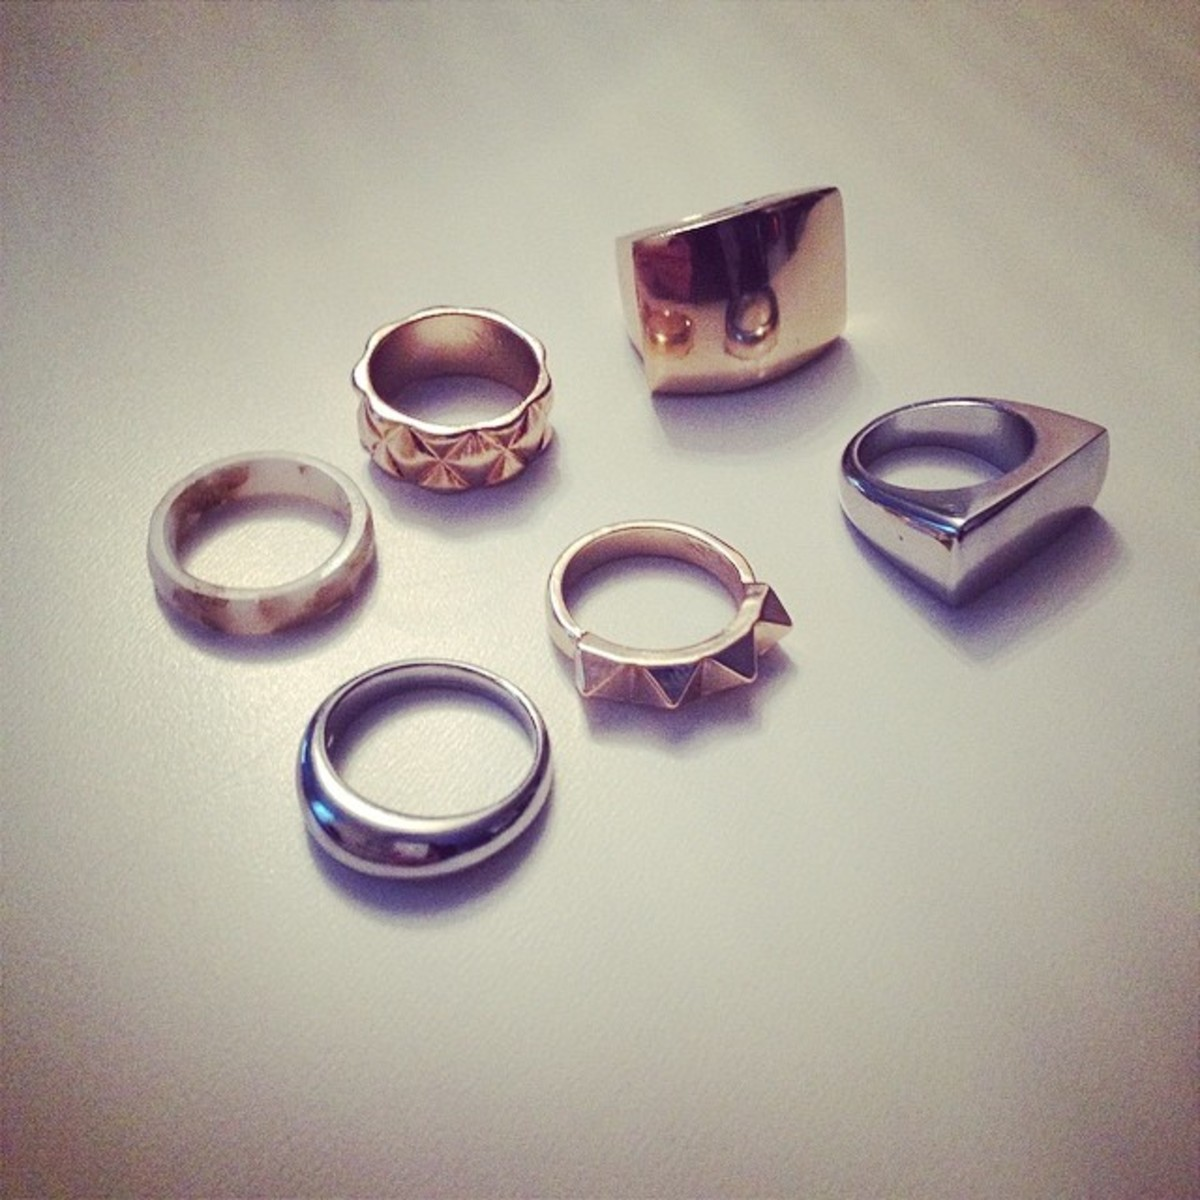 How to Make a Resin Ring | FeltMagnet